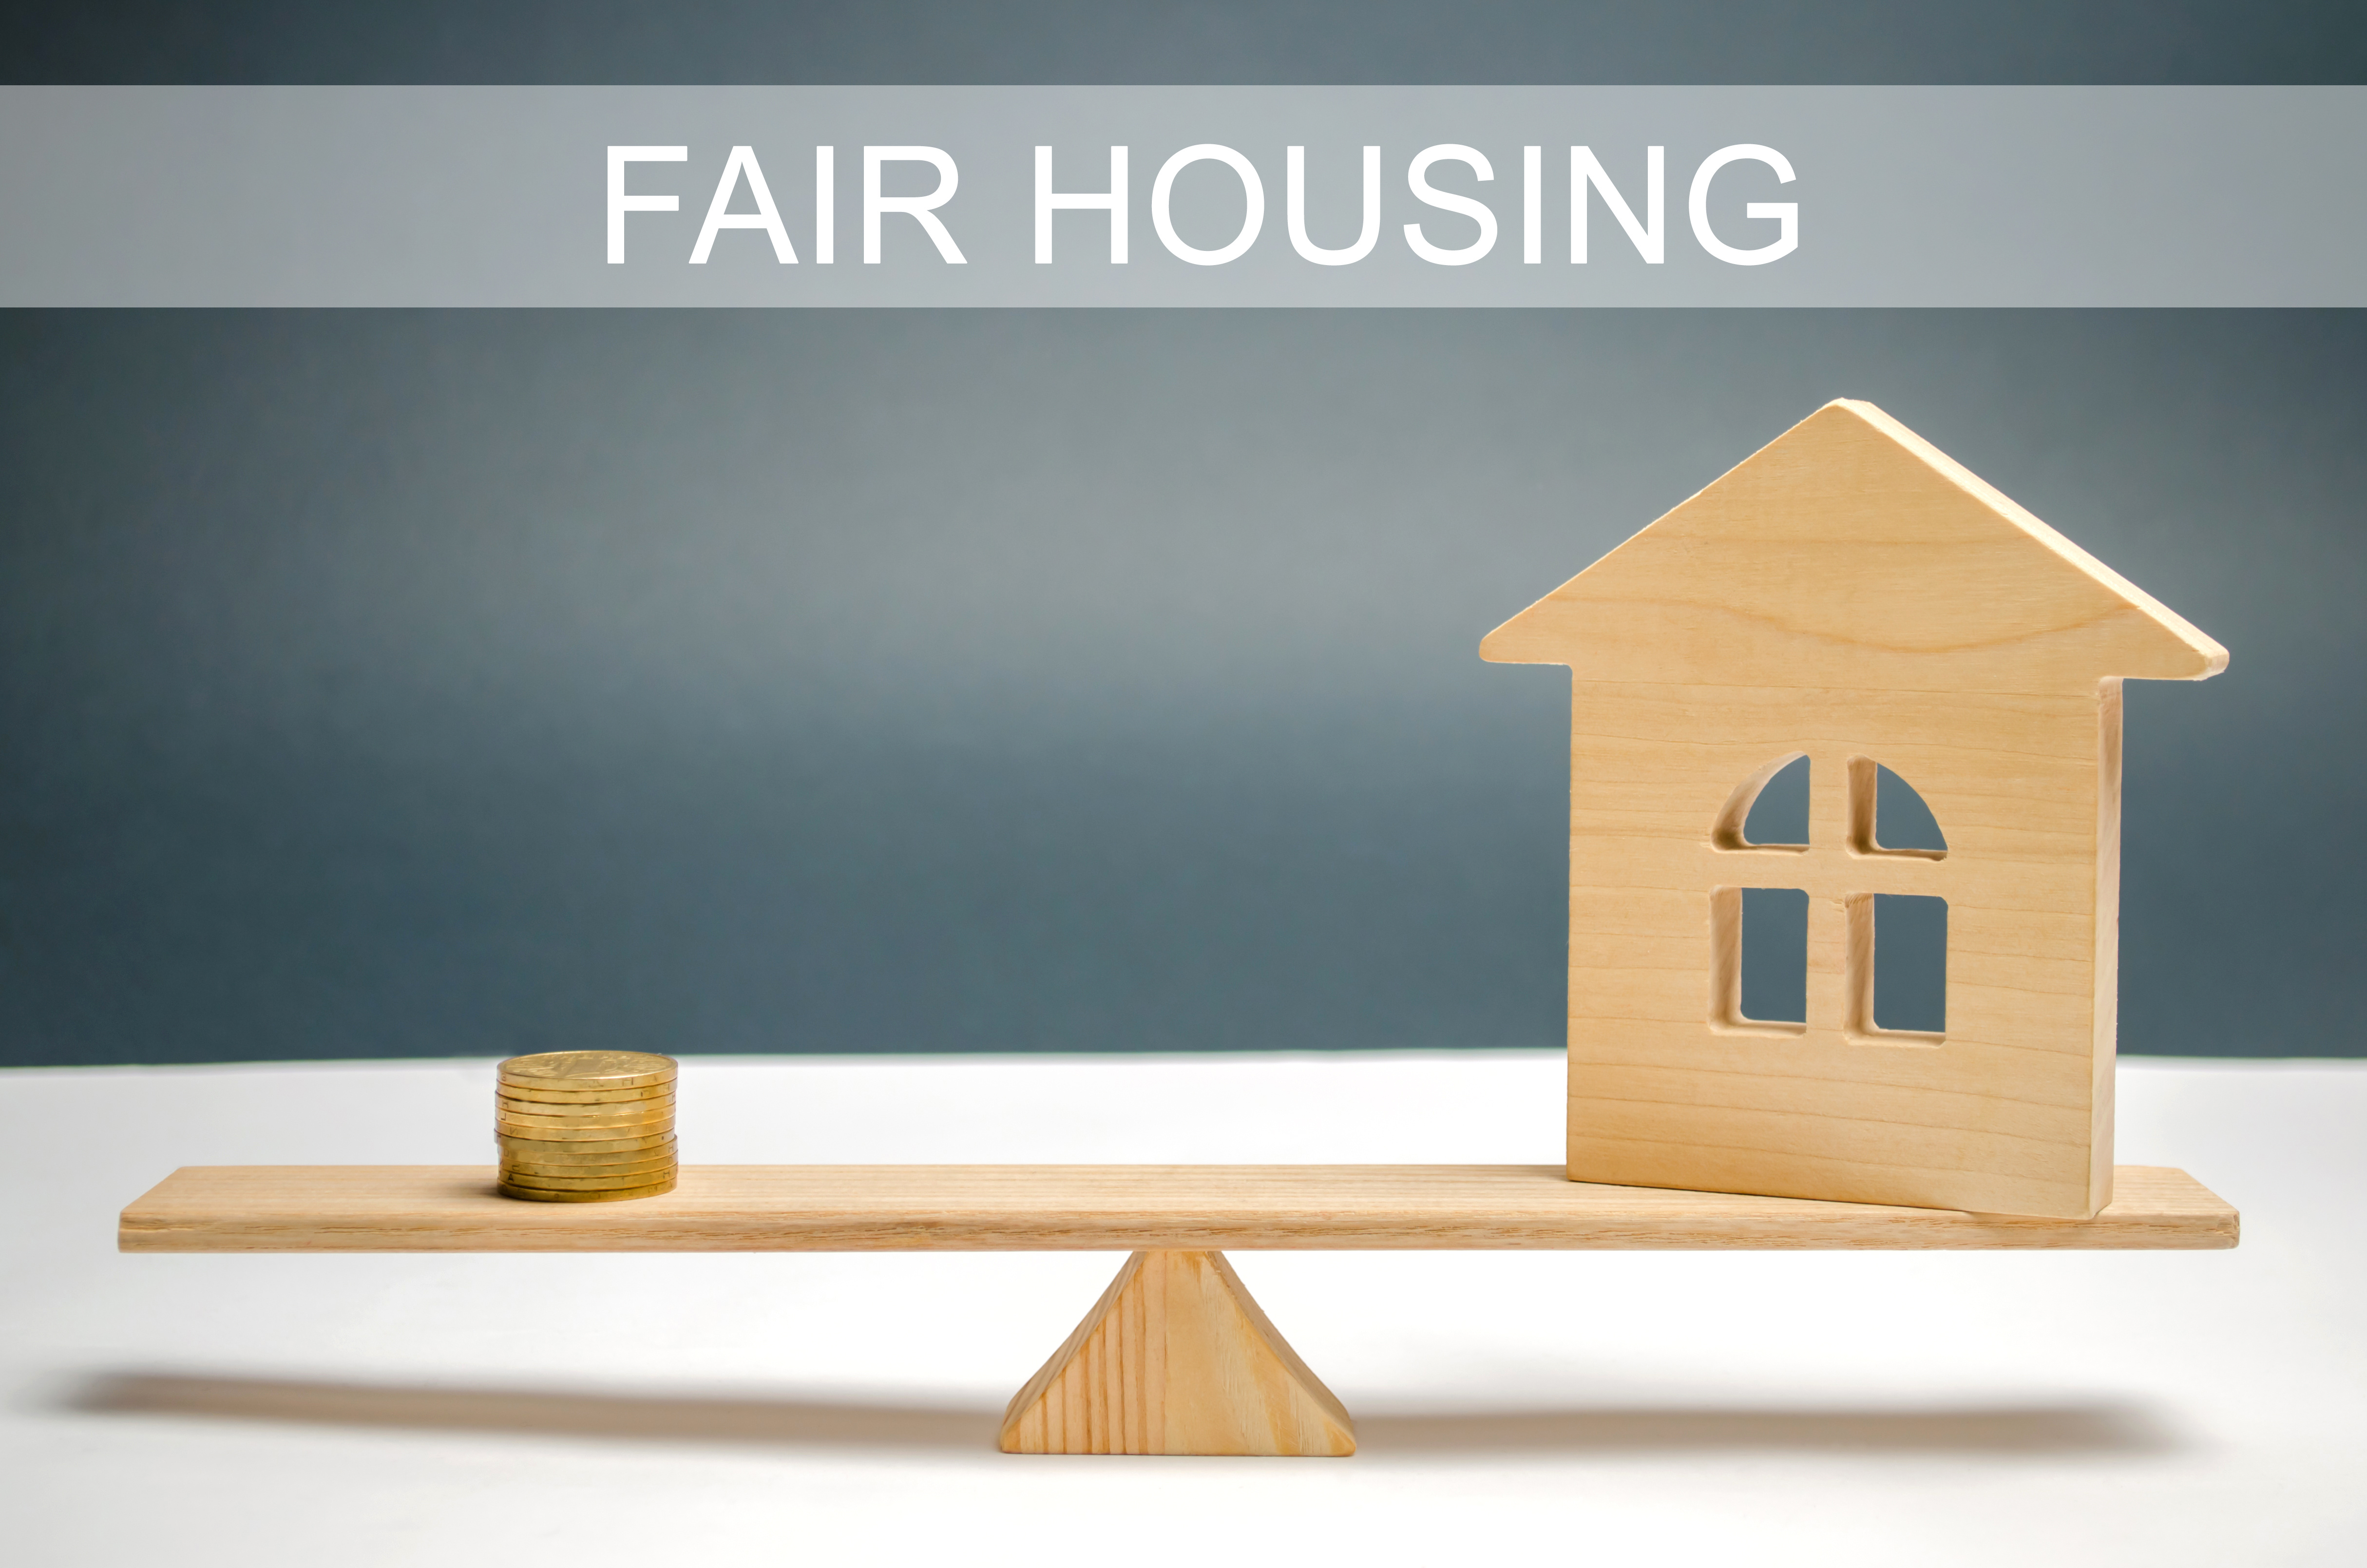 Money And House On The Scales With The Inscription Fair Housing. Home Appraisal. Property Valuation. Housing Evaluator. Fair Trade. Legal Transparent Deal. Apartment Purchase / Sale.